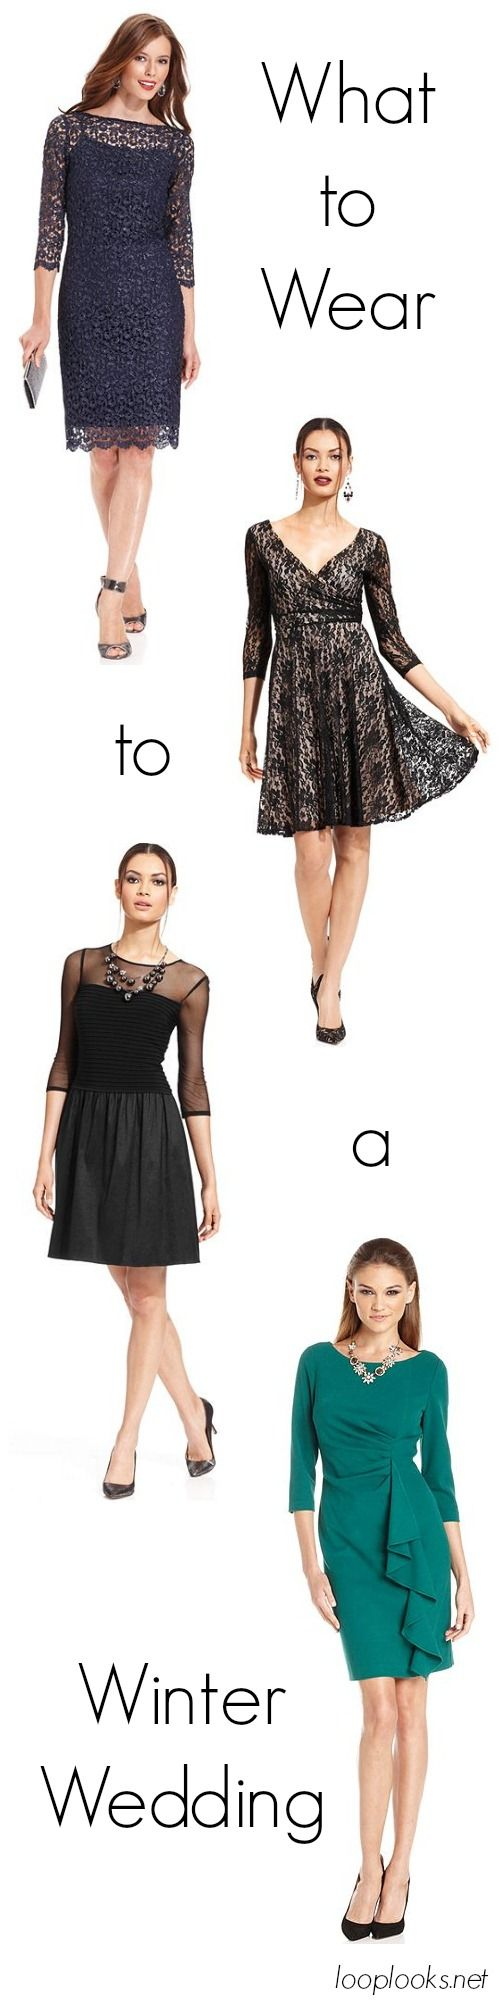 winter wedding guest dresses What to wear to a winter wedding dos and don ts